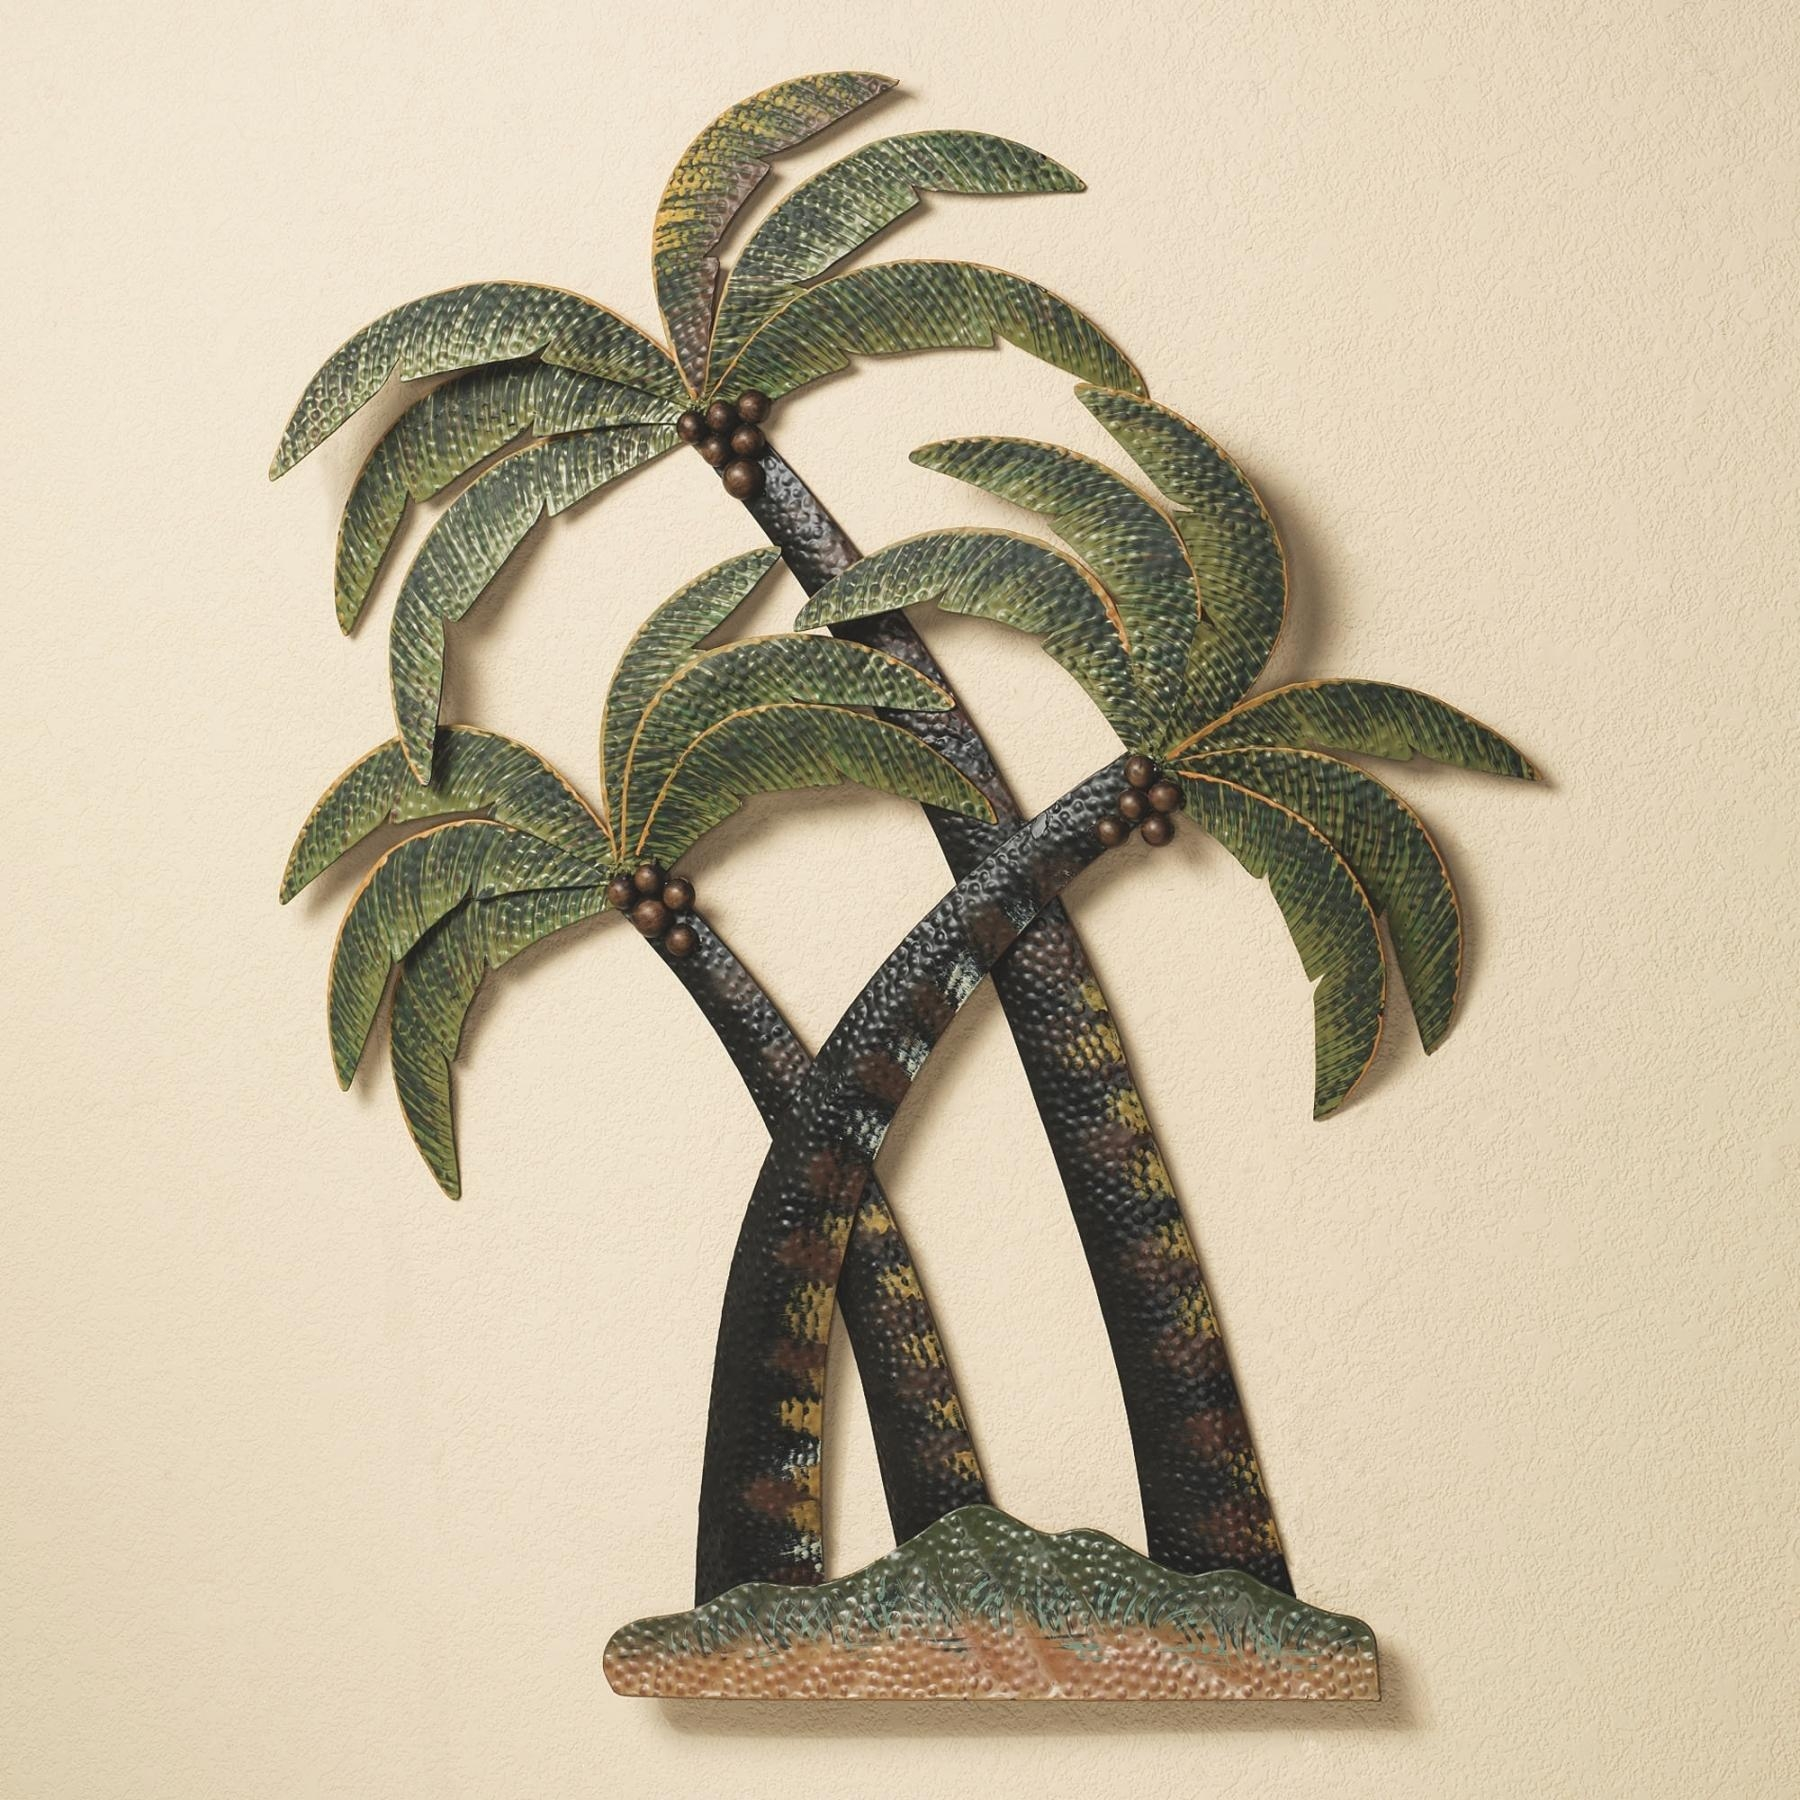 Wall Art Designs: Palm Tree Wall Art Palm Tree Bathroom Palm Trees Intended For Palm Tree Metal Wall Art (Image 19 of 20)